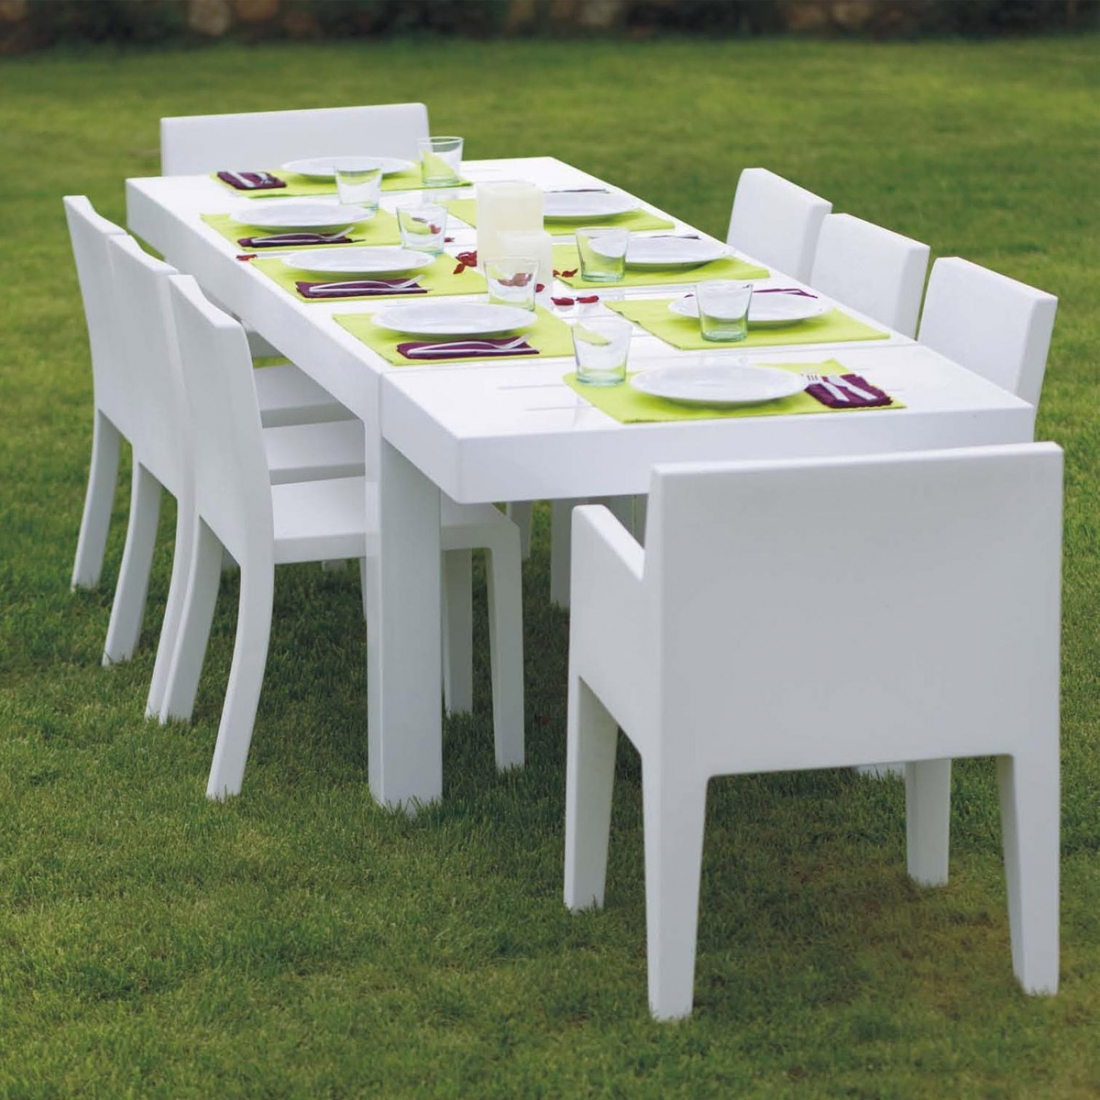 Table de jardin design 10 personnes jut par vondom for Design jardin terrasse